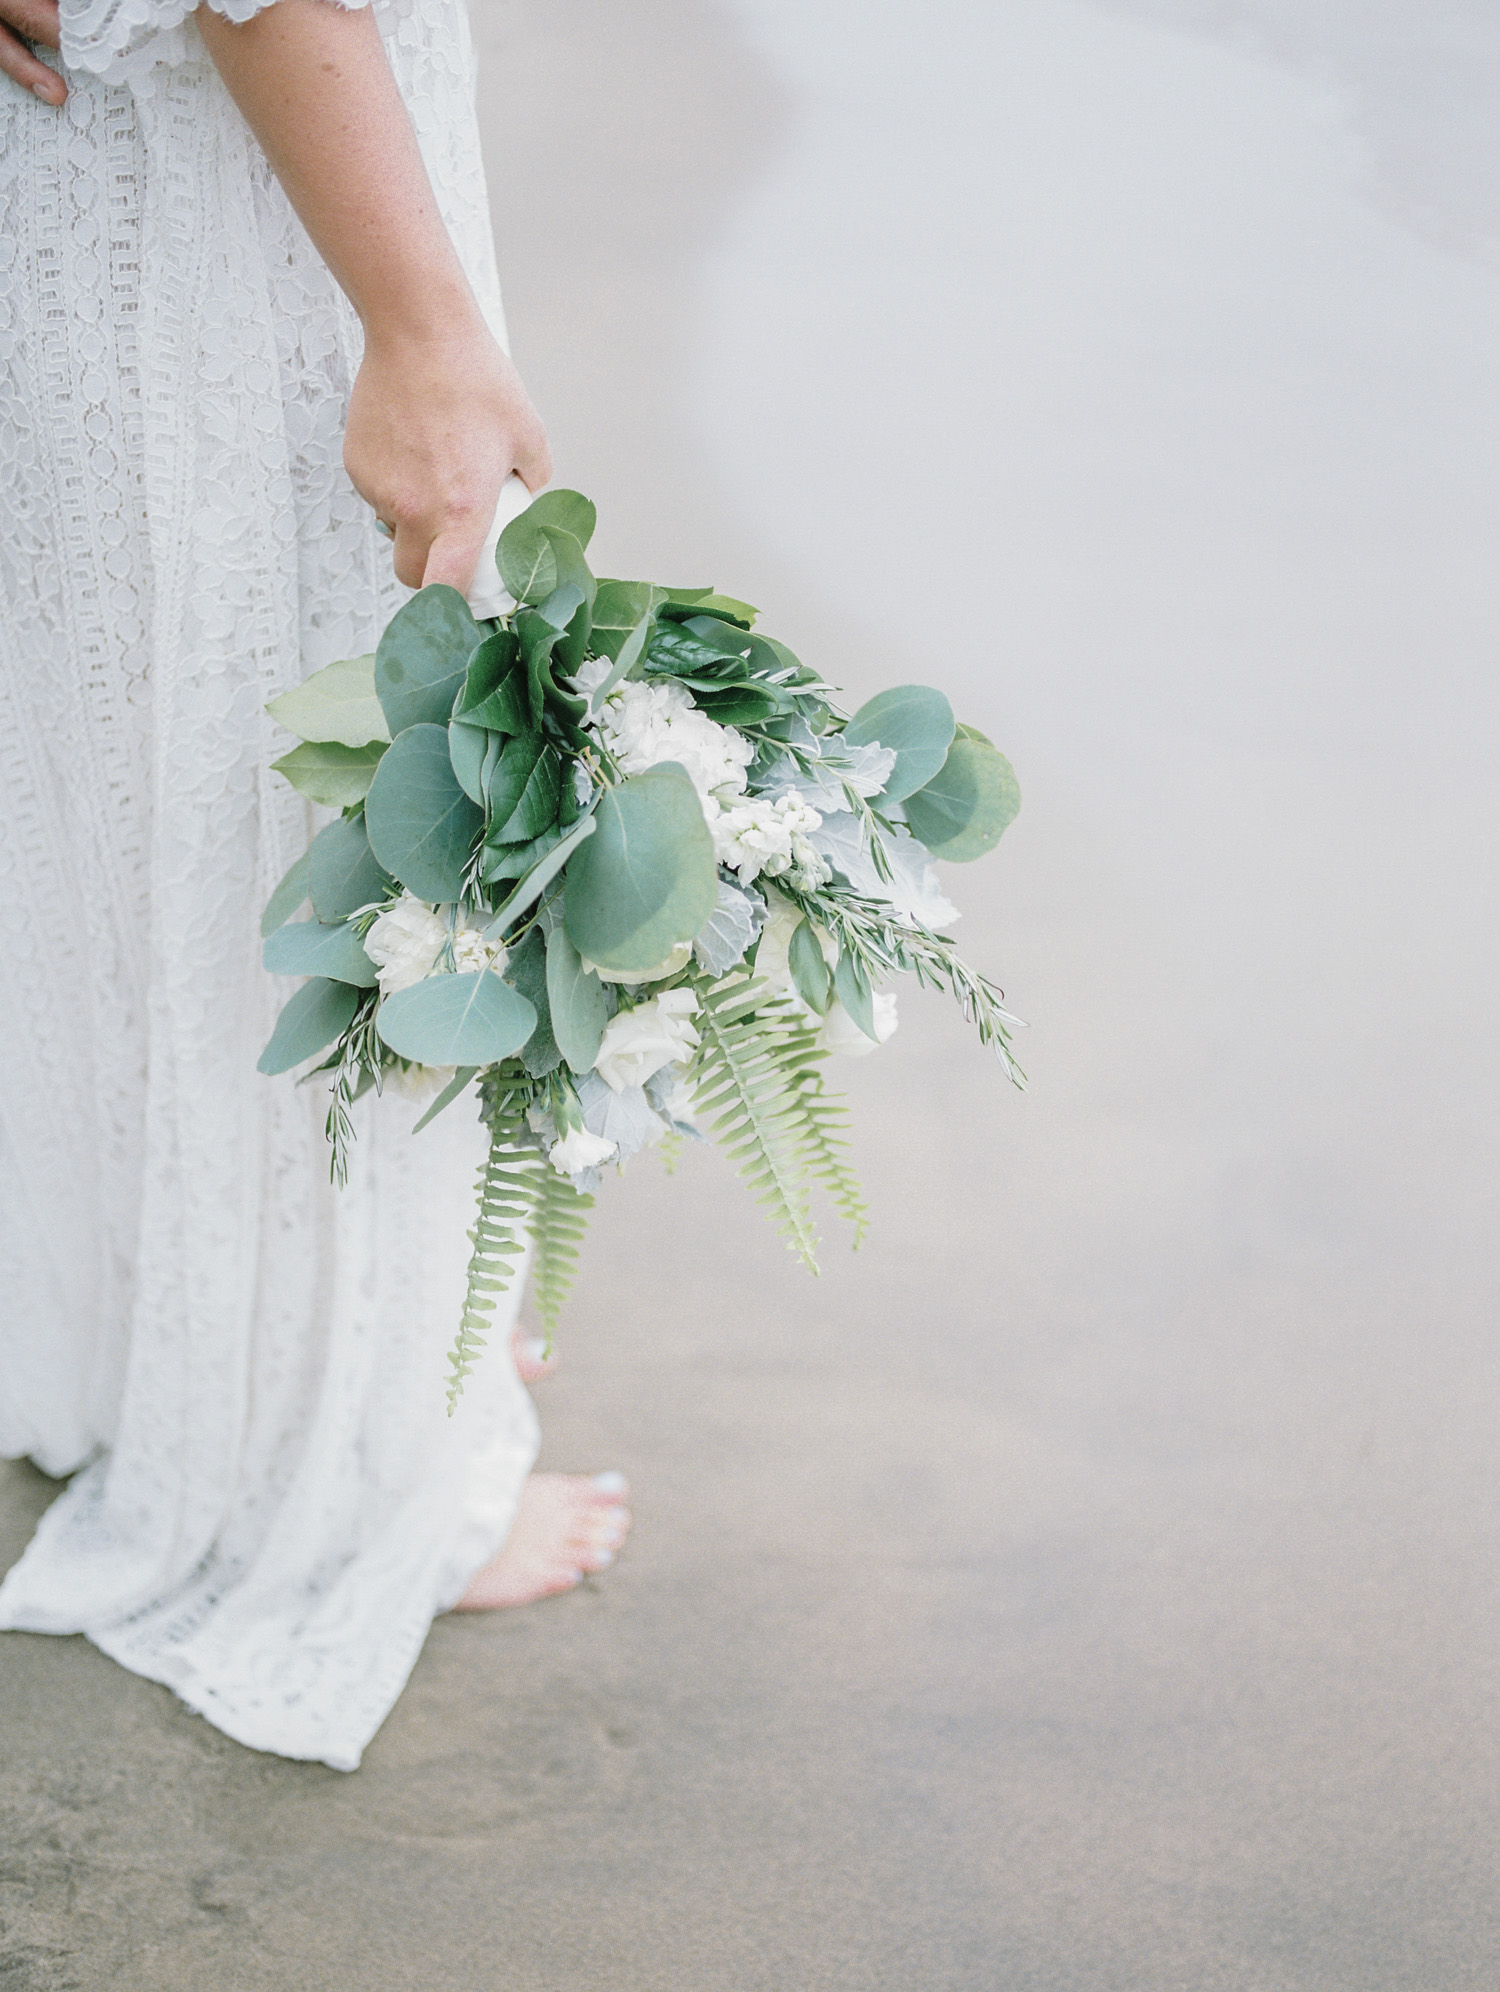 A bridal bouquet of eucalyptus, fern, and white flowers is held by a boho bride on a Lake Michigan beach